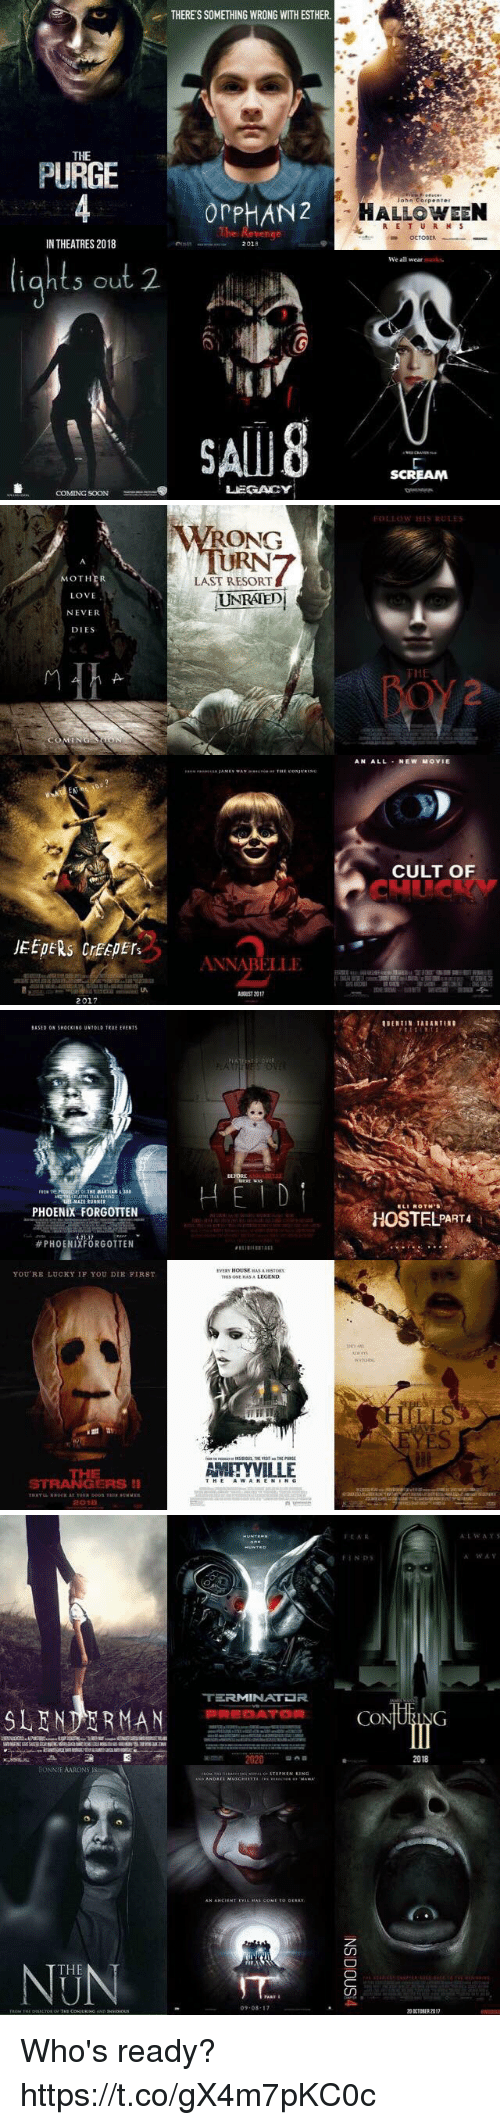 Slender Man: THERESSOMETHING WRONG WITH ESTHER.  THE  PURGE  PHAN  Th  IN THEATRES 2018  2018  ht, out 2.  SALUB  LEGACY  COMING SOON  John Coep enter  HALLOWEEN  We all wear  SCREAM   MOTHER.  LOVE  NEVER  DIES  2017  AWRONG  LAST RESORT  NRATED  ANNABELLE  FOLLOW HIS RULES  HE  AN ALL  NEW MOVIE  CULT OF   BASED ON SHOCKING UNIOL TRUE EVENTS  NAZI RUNNER  PHOENIX FORGOTTEN  PHOENIXFORGOTTEN  YOURE LUCKY IF YOU DIE FIRST  STRANGERS  II  2001B  AMITYVILLE  UENIIN TARANTIND  ELI ROTH S  HOSTEL PART   SLENDER MAN DATOR  BONNIE AARONS  IS  THE  09.08  AR  CO  ING  2018  20 CNOBER 2017  A WAV Who's ready? https://t.co/gX4m7pKC0c